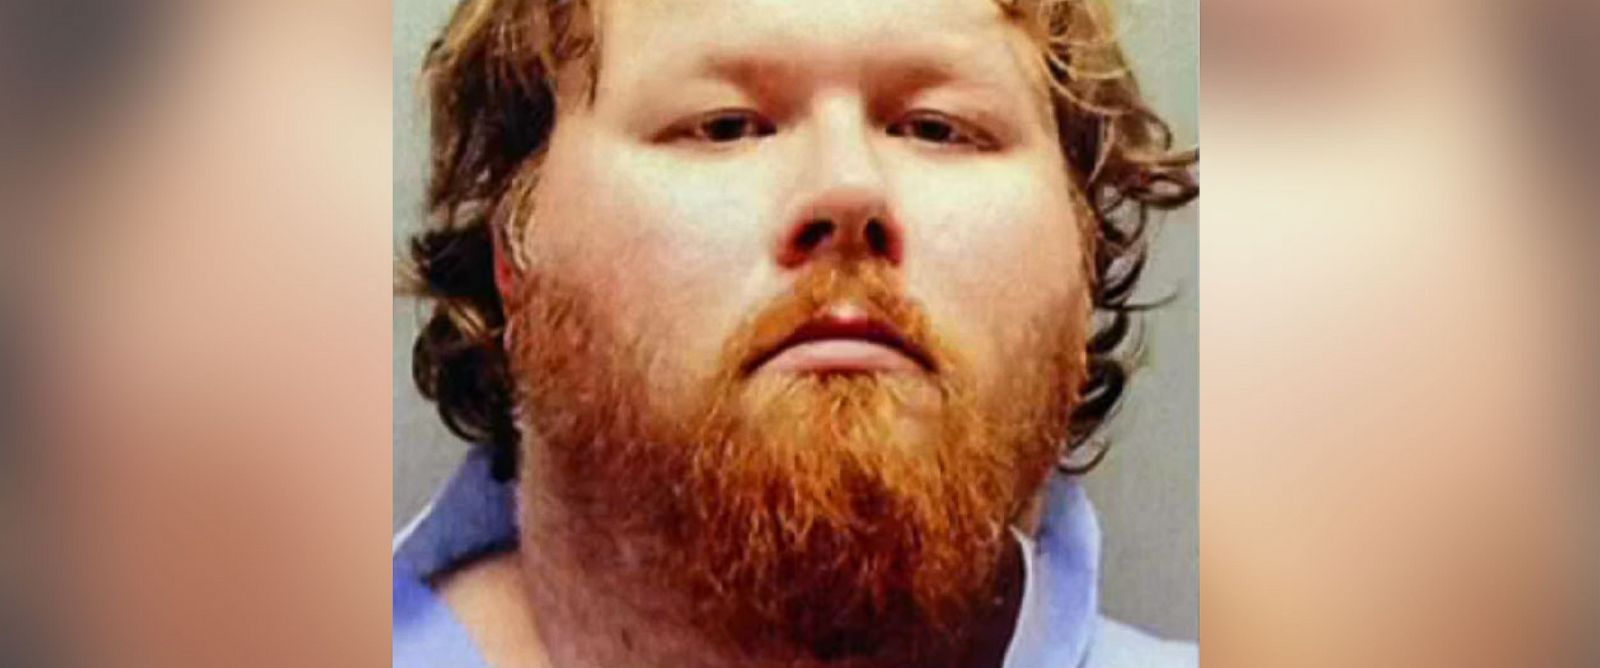 PHOTO: Authorities have identified Ron Lee Haskell, 34, as the suspect in a July 9, 2014 shooting in Spring, Texas.